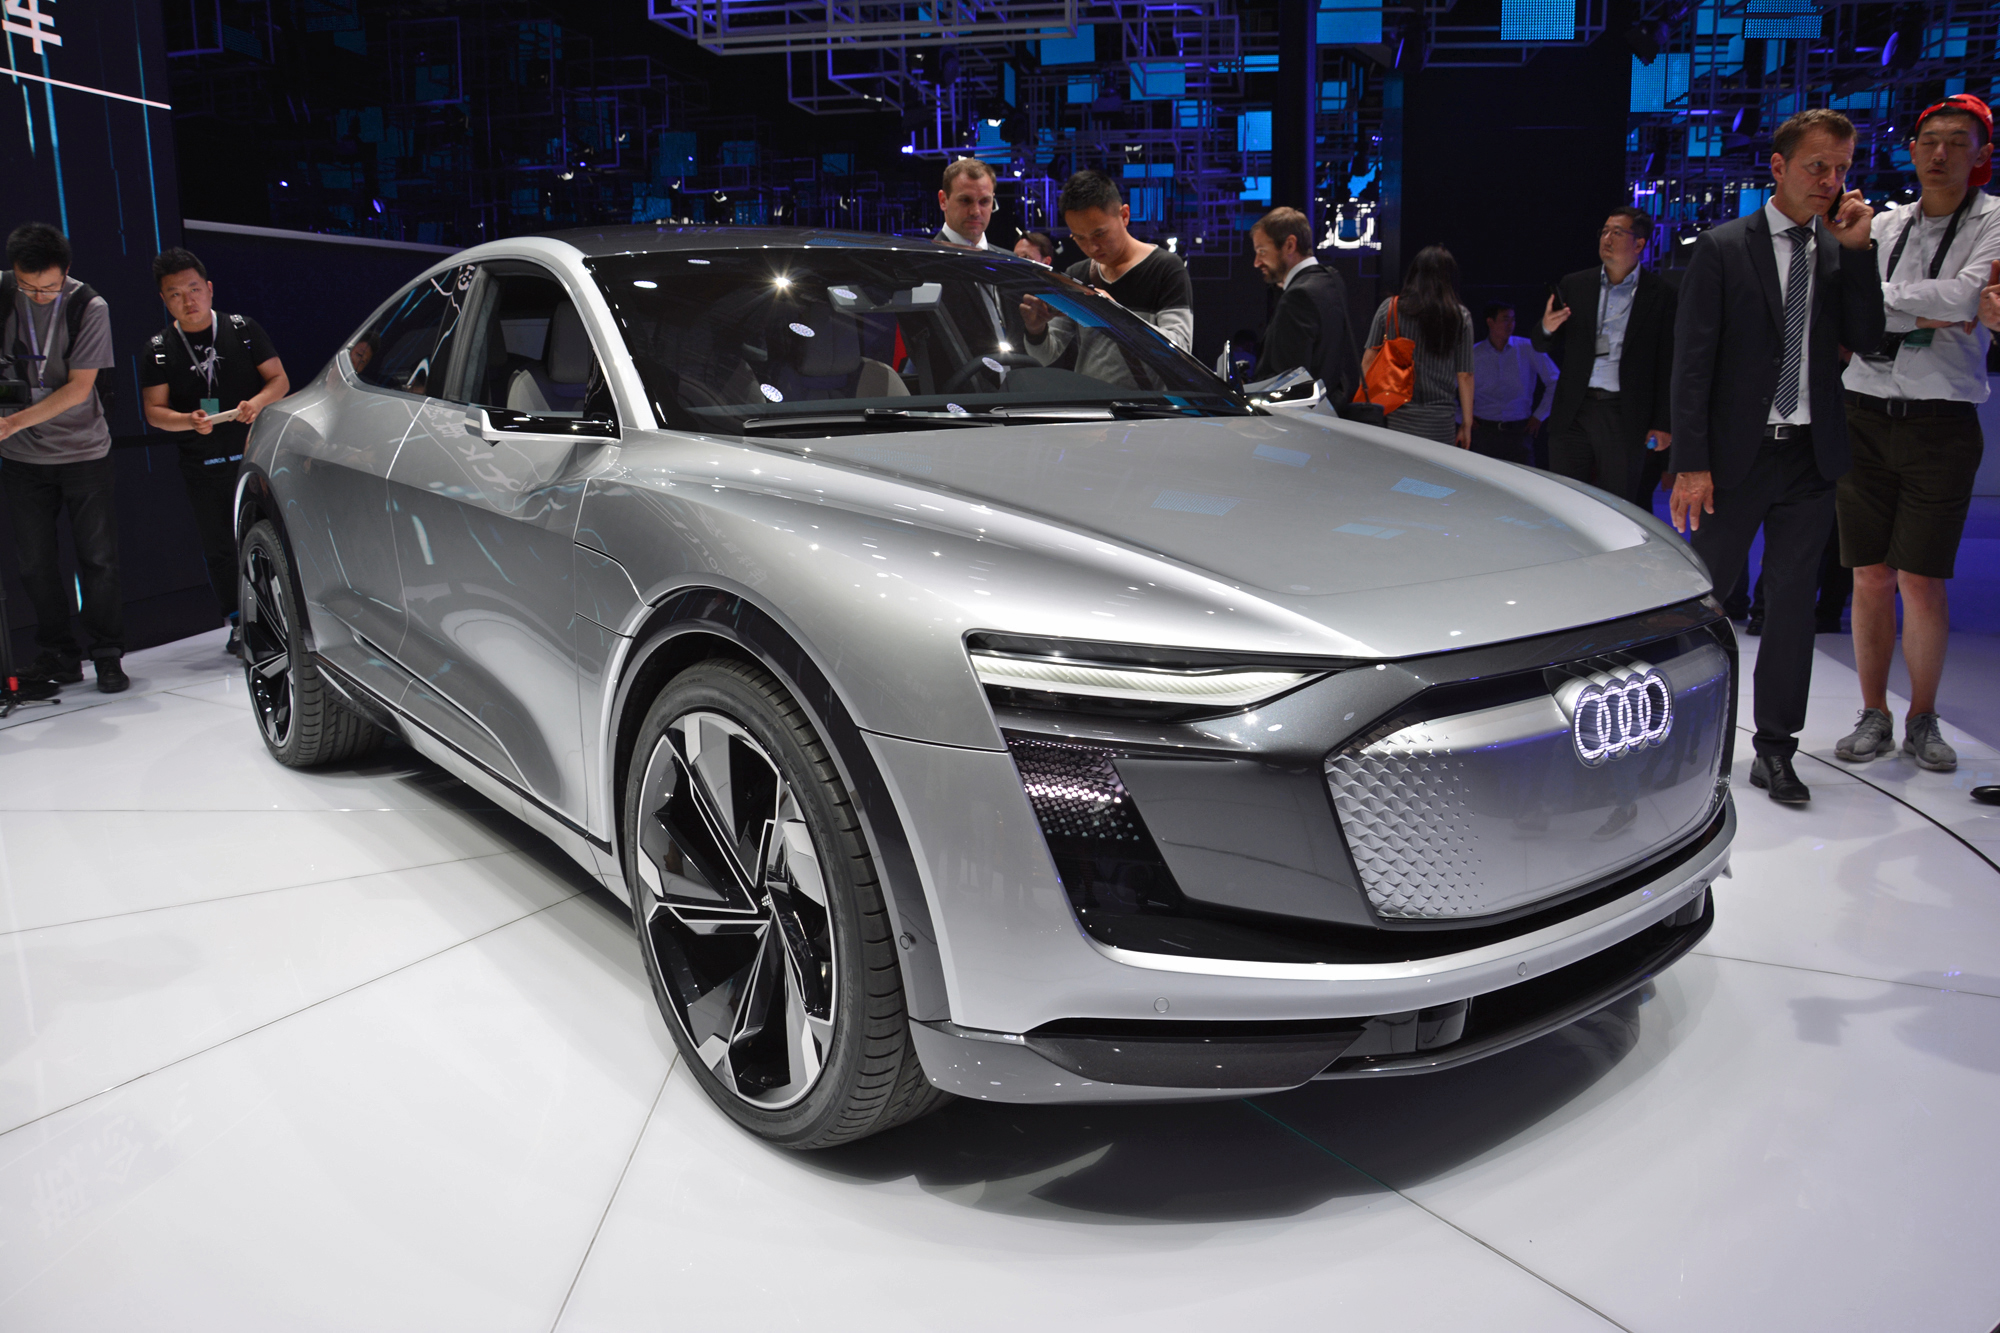 Etron Sportback Concept Previews Audi Electric Car Coming In - Audi car show